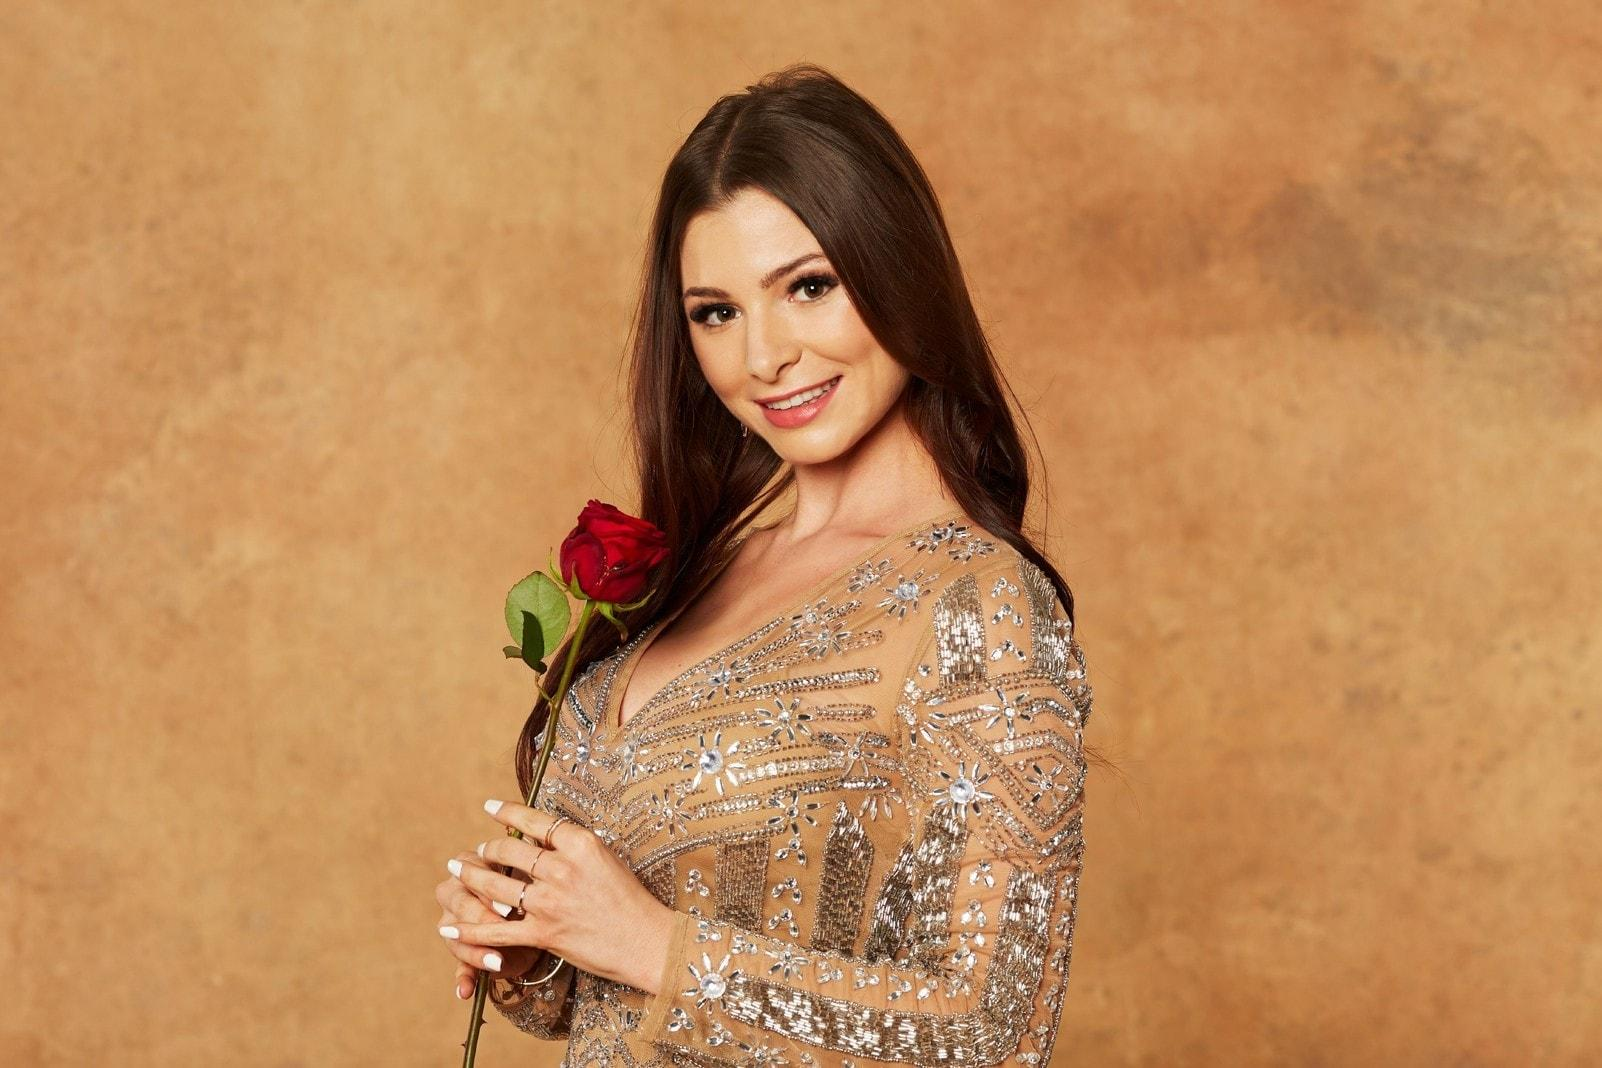 Der Bachelor Nadine Rose